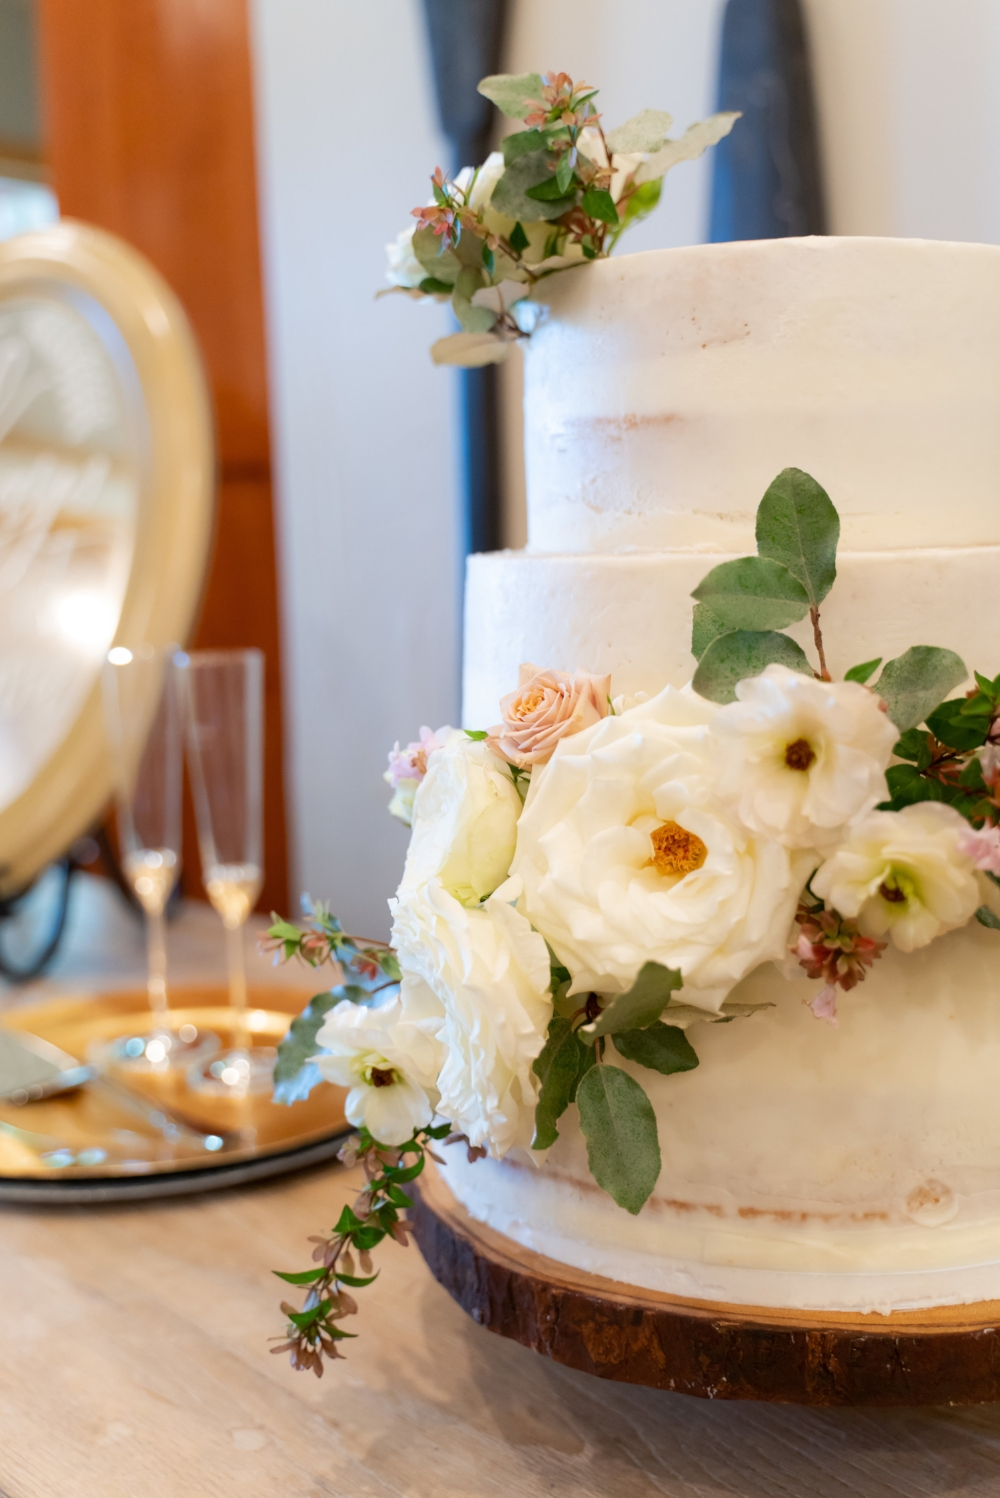 A white wedding cake sitting atop a circular wooden base decorated with white roses.